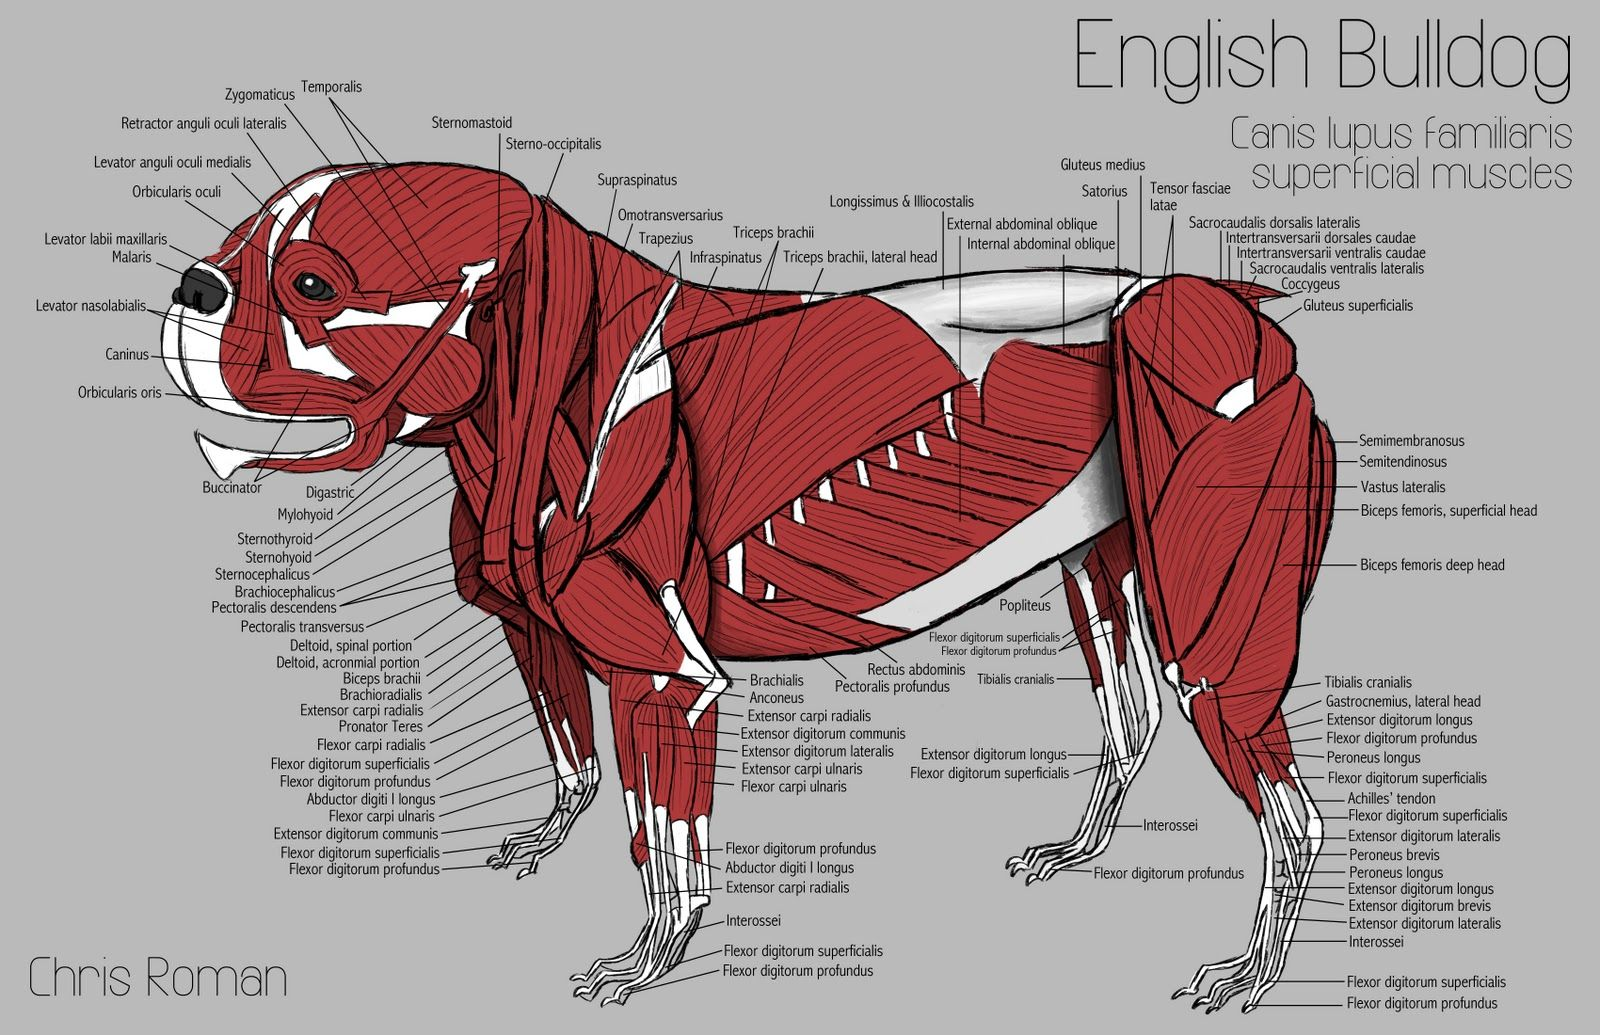 dog_muscles.jpg (1600×1035) Animal Anatomy Pinterest